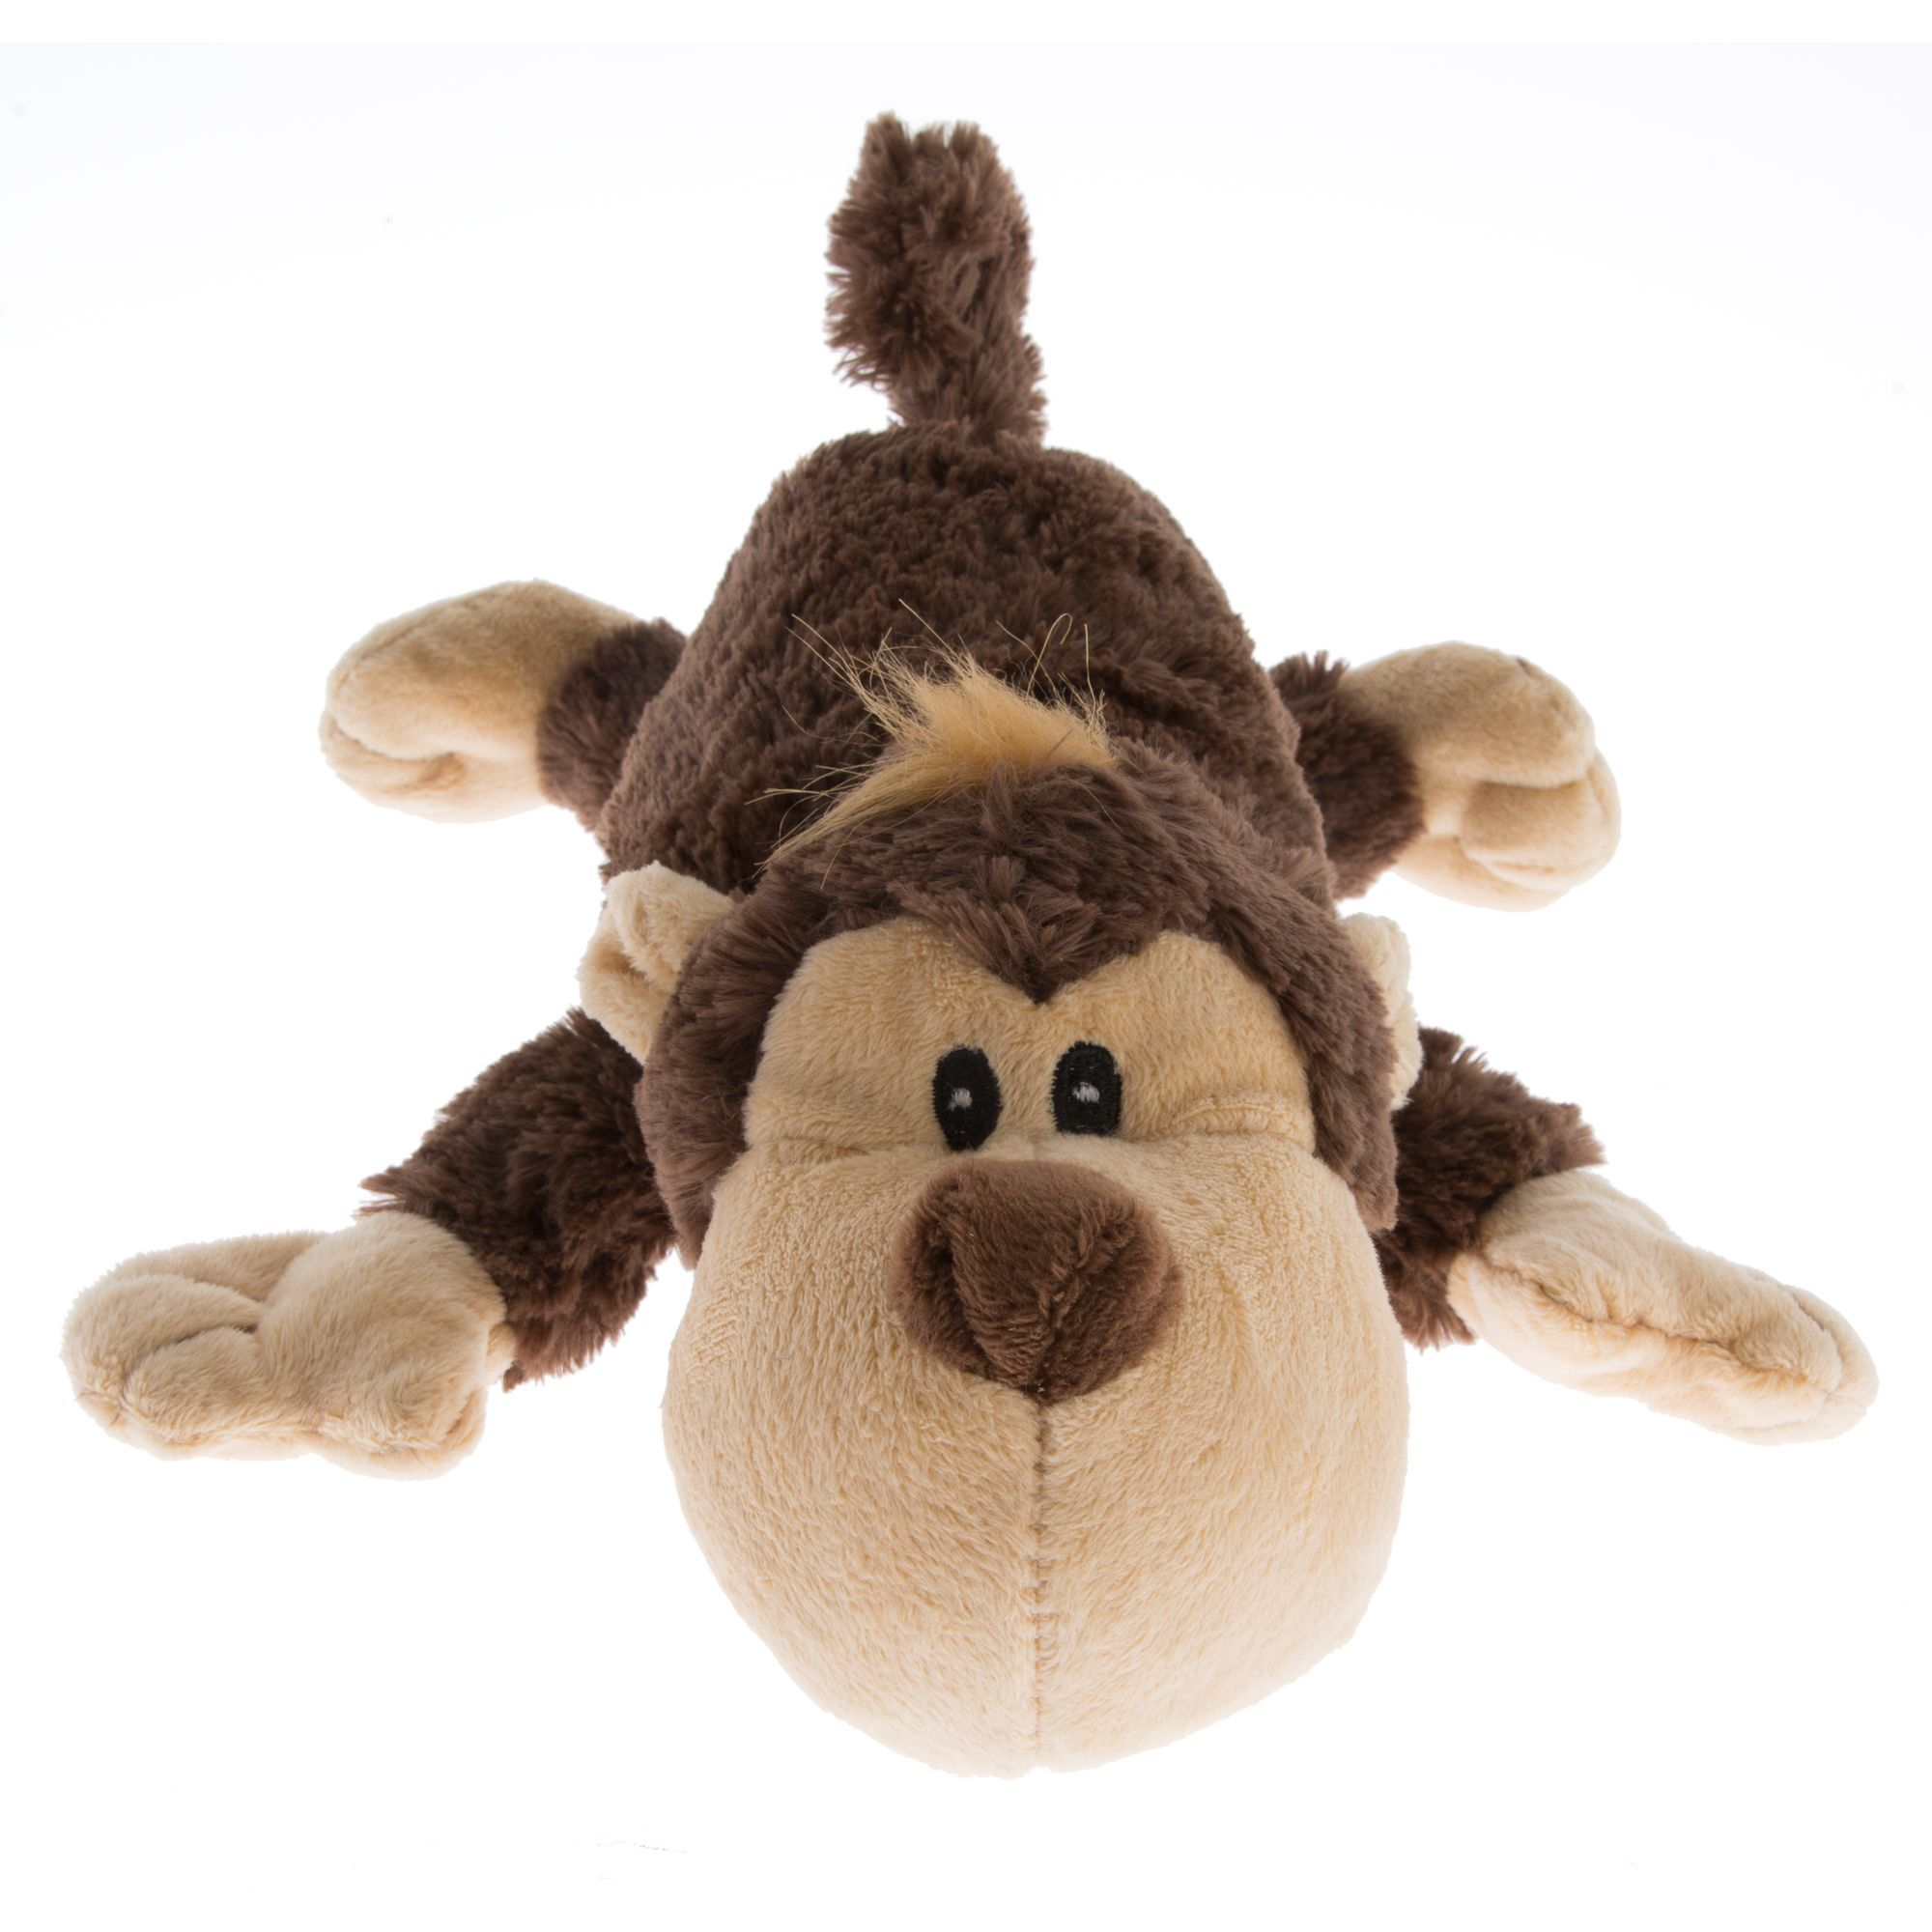 Kong Cozie Spunky Monkey Dog Toy Brown In 2020 Best Dog Toys